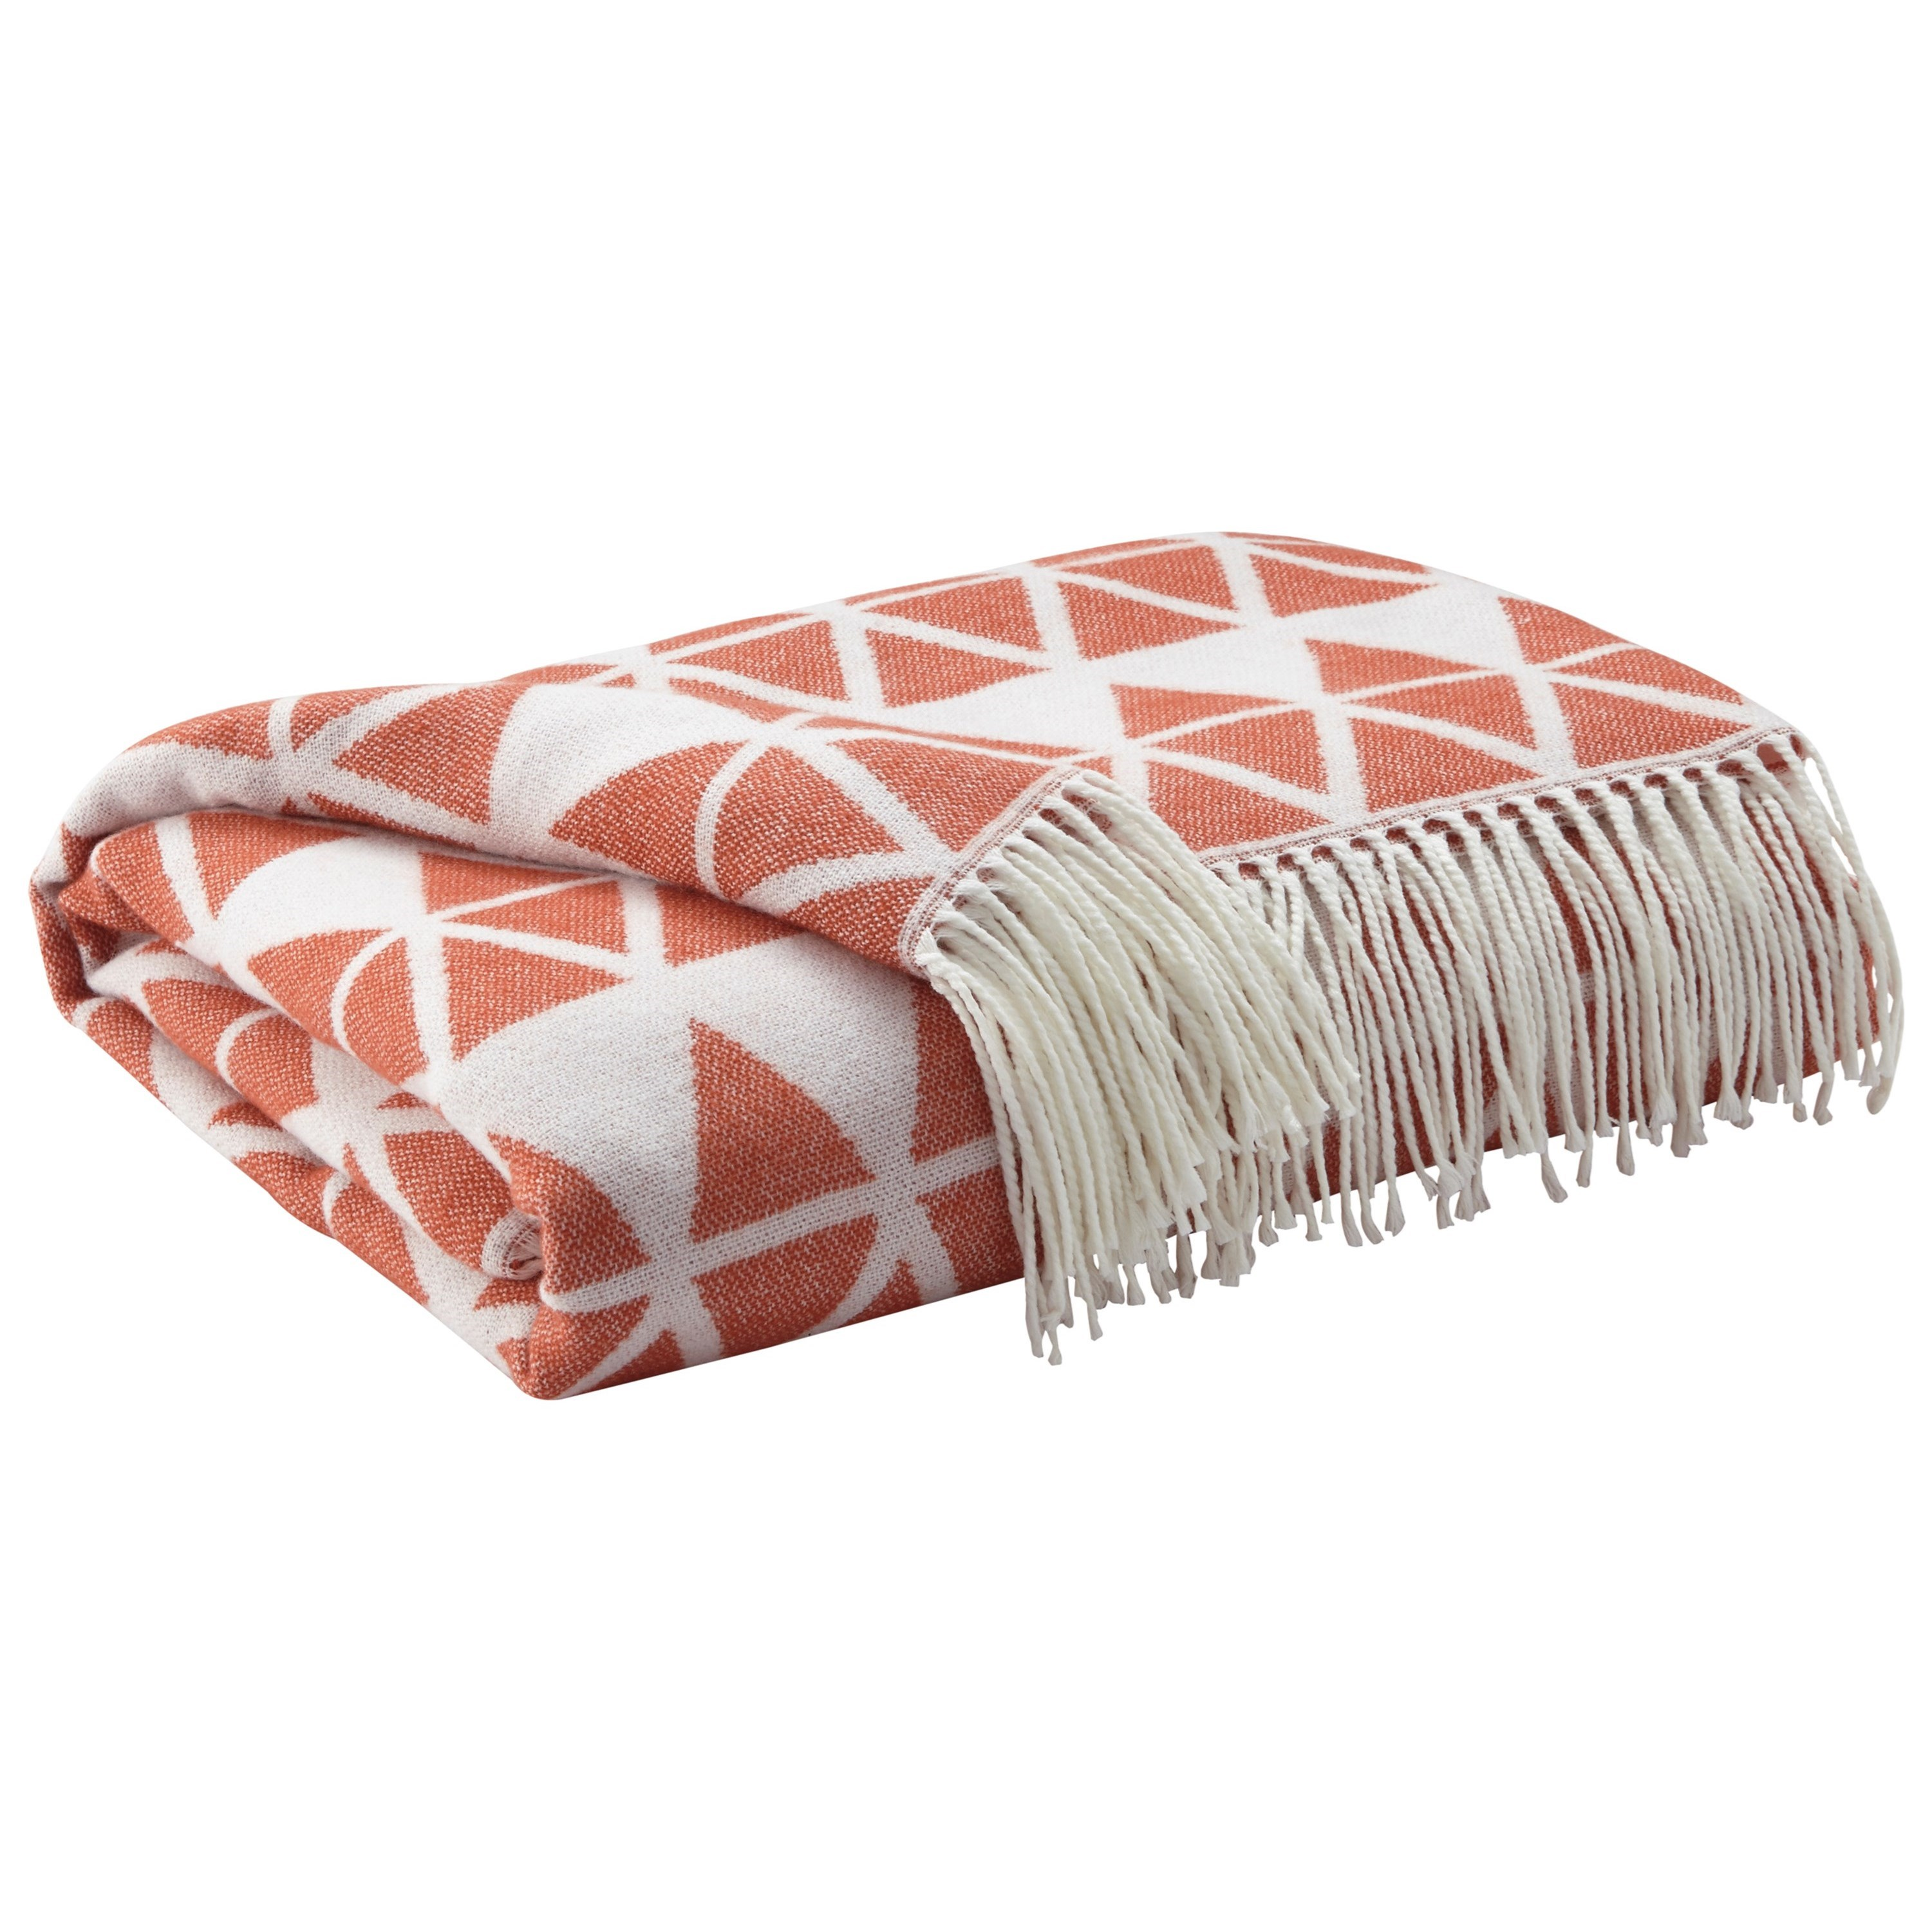 Signature Design by Ashley Throws Noemi - Burnt Orange Throw - Item Number: A1000747T